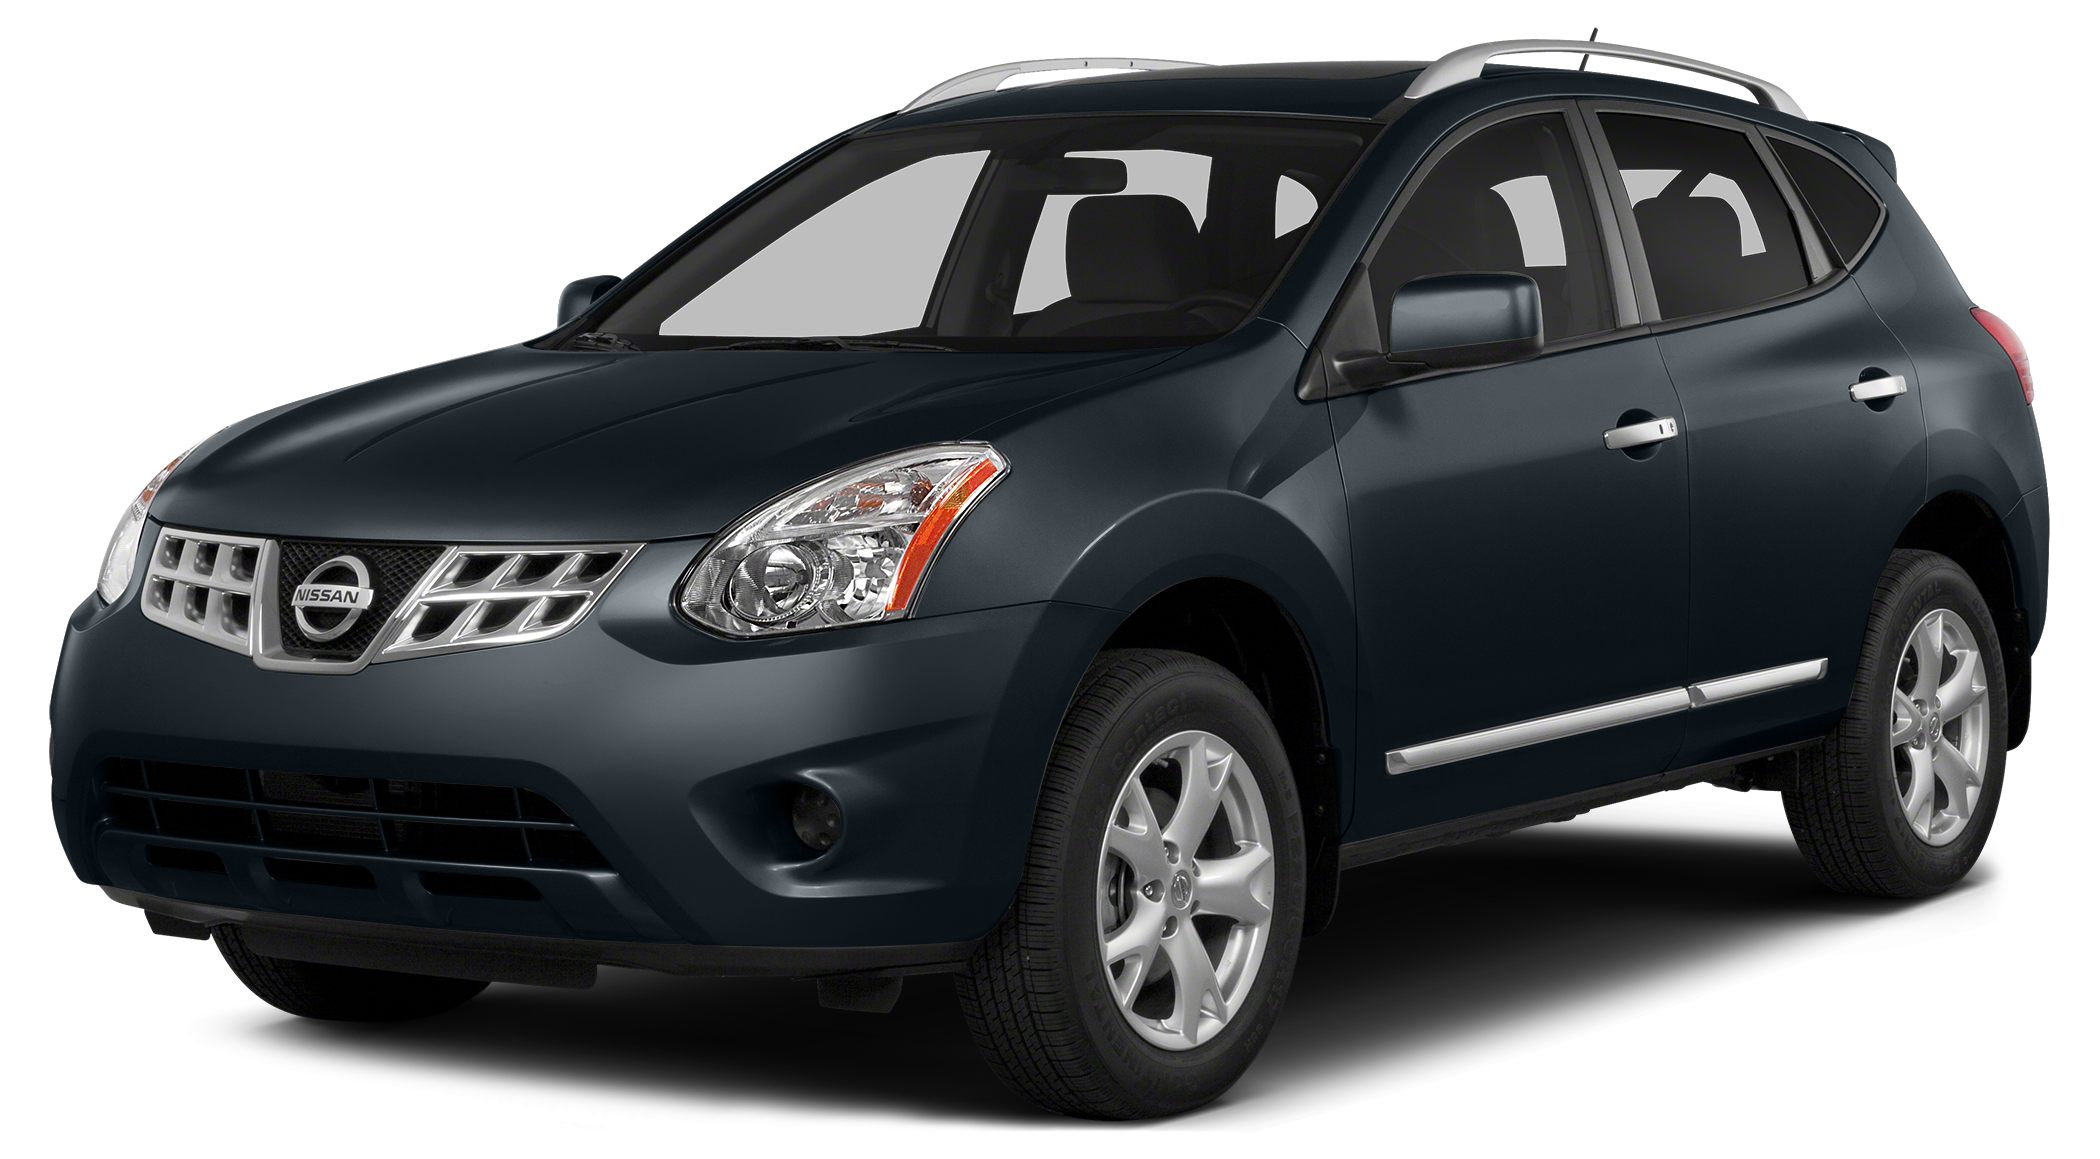 2013 Nissan Rogue S WE SELL OUR VEHICLES AT WHOLESALE PRICES AND STAND BEHIND OUR CARS  COME